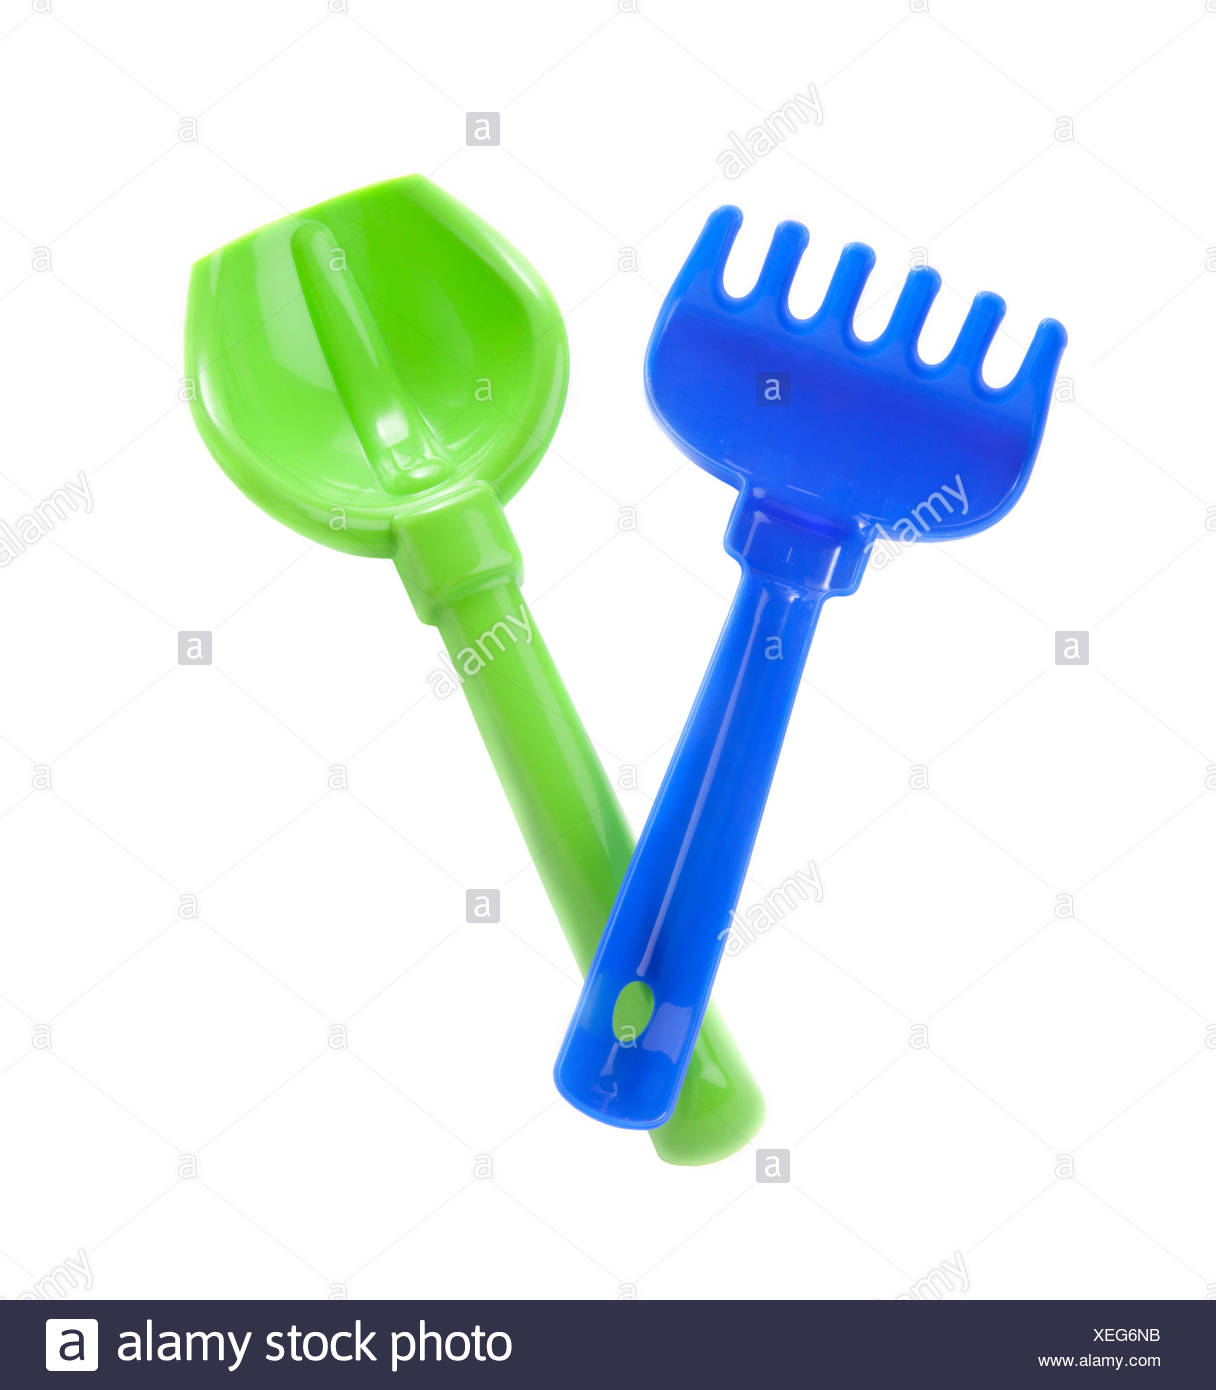 blue rake and green spade over whitebackground - Stock Image